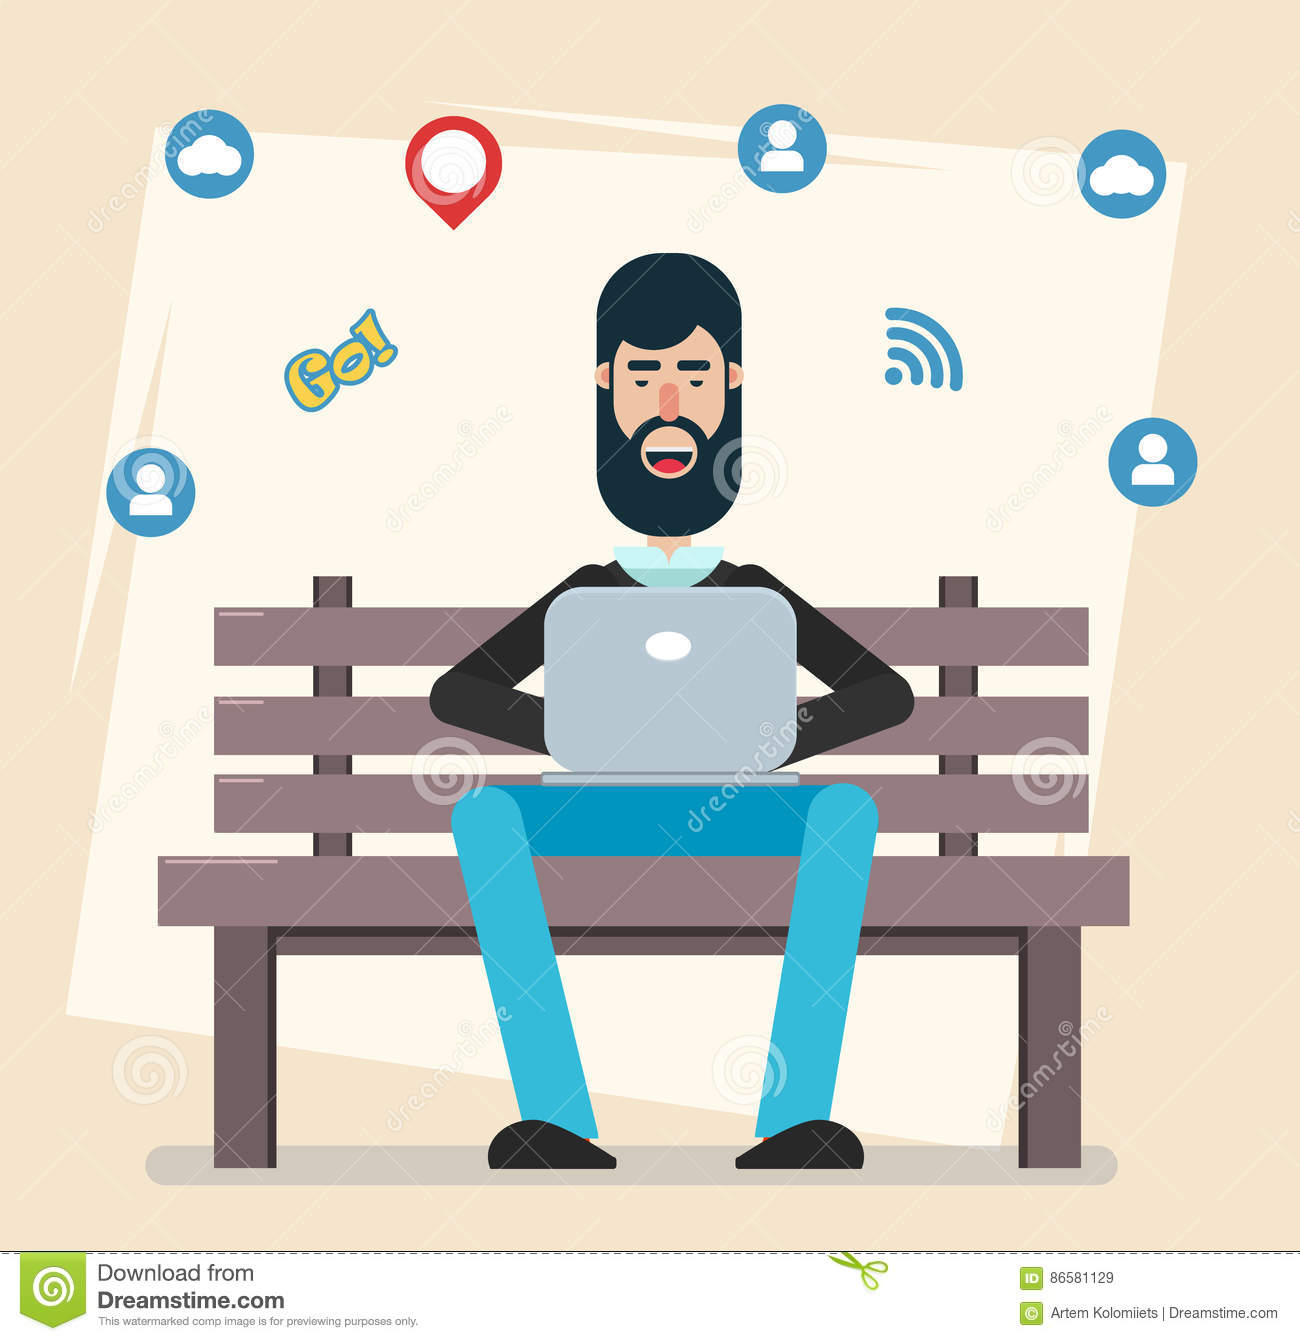 Attractive Bench Games Part - 11: Man Sitting In The Park On The Bench With Laptop, Working, Playing Computer  Games, Social Networking Or Texting To His Friends. Modern Flat Style.